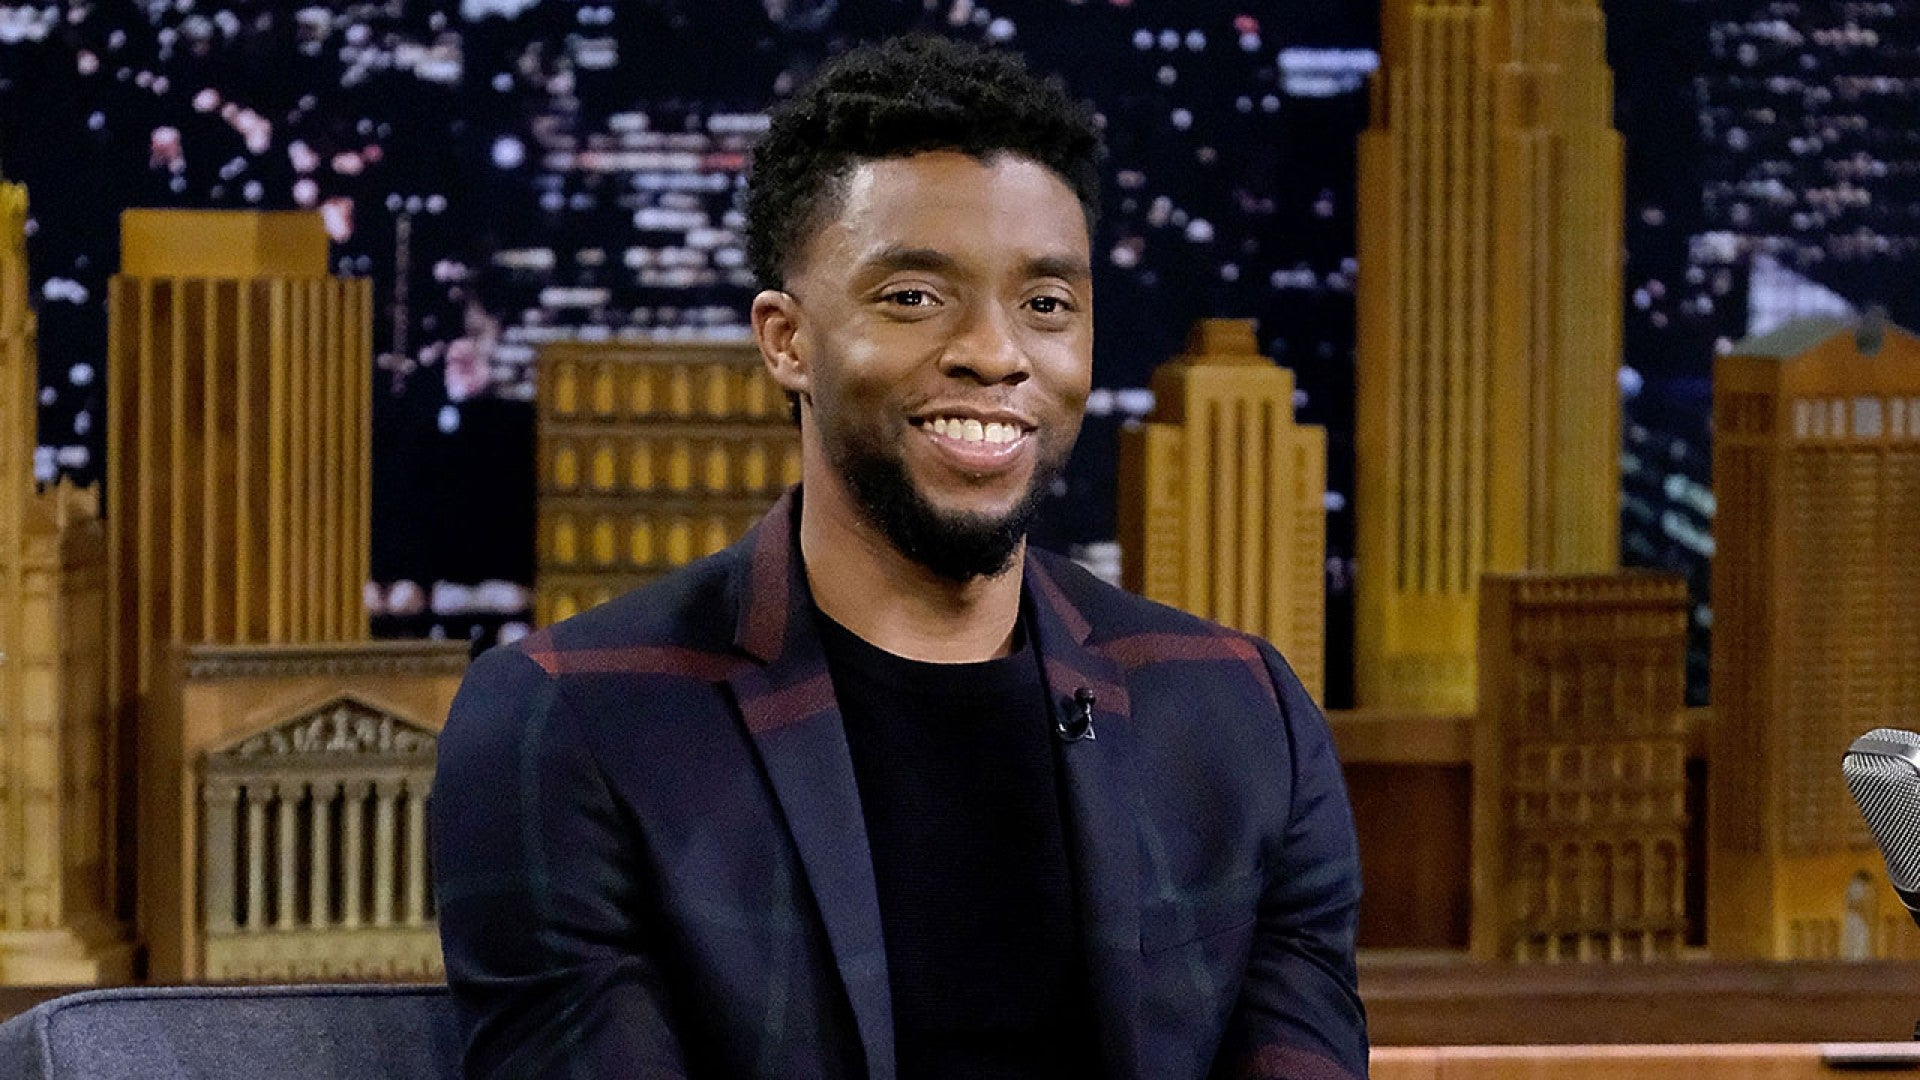 Chadwick Boseman Black Panther Star Dead At 43 Entertainment Tonight